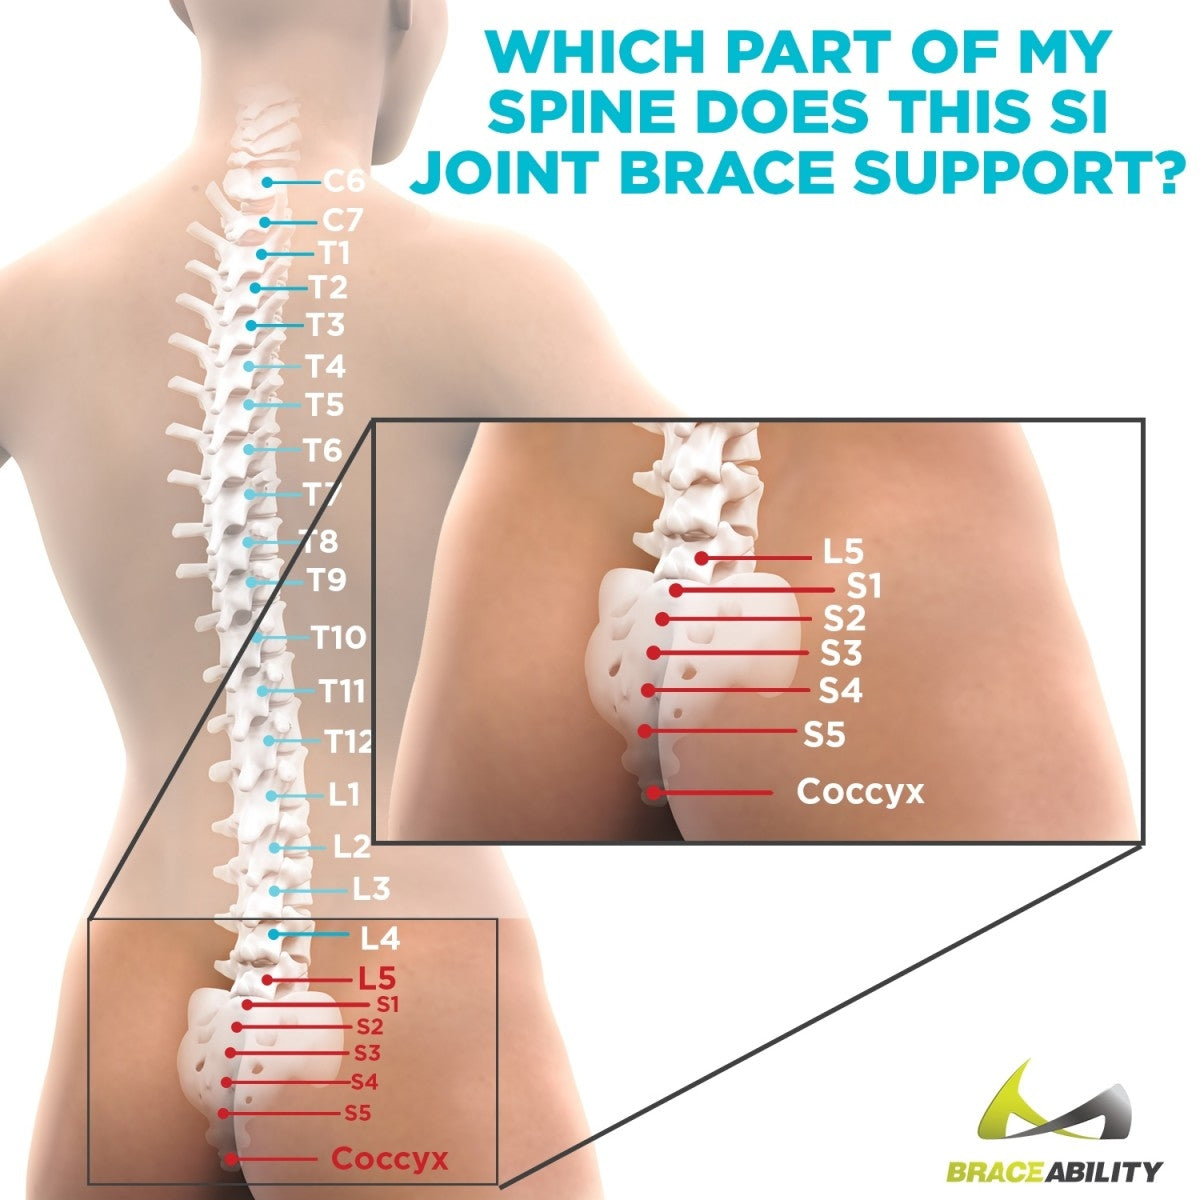 area of your back that the sacroiliac joint pain brace treats